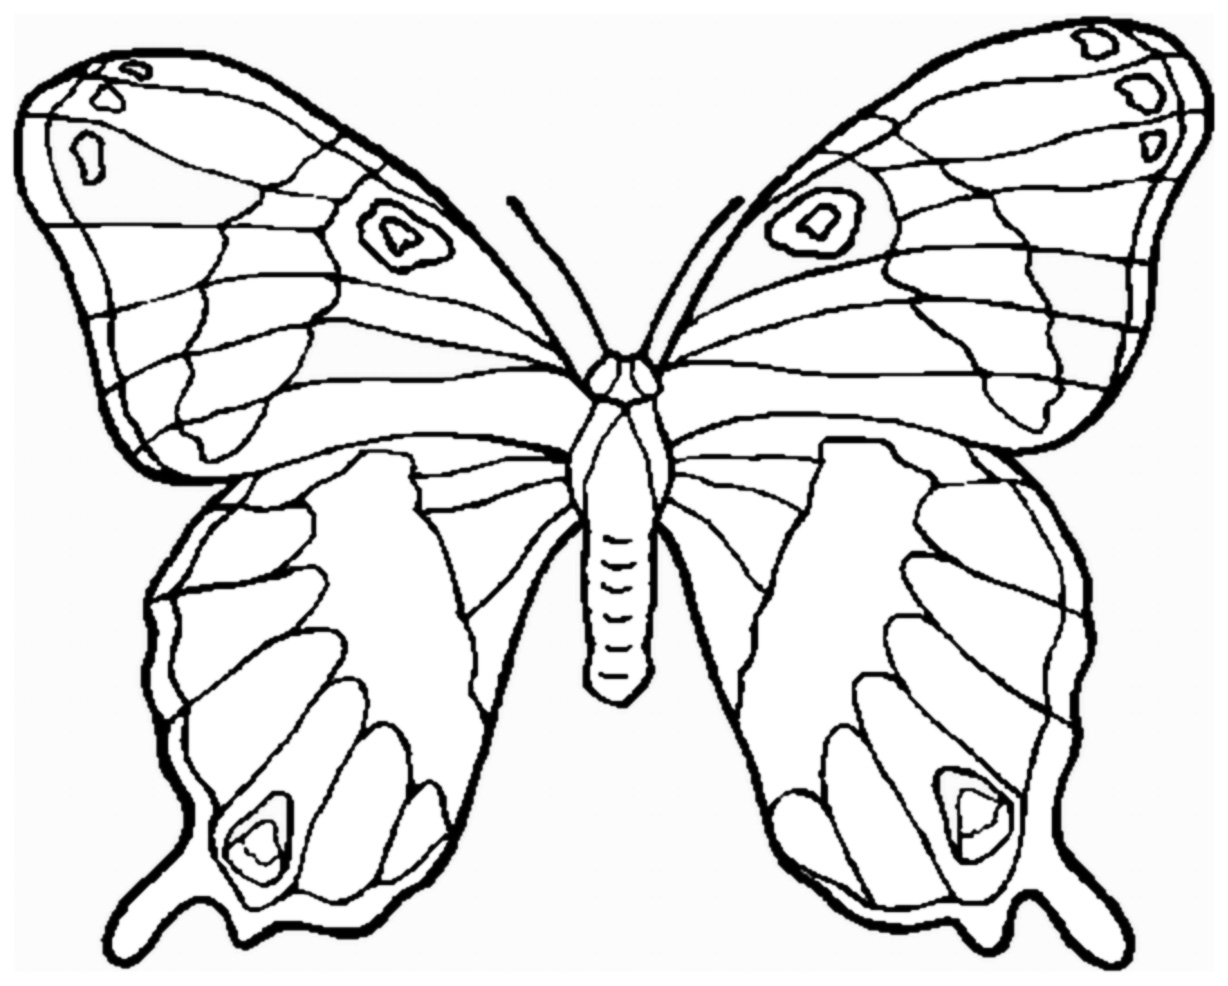 butterfly colouring pics learn to coloring june 2012 colouring butterfly pics